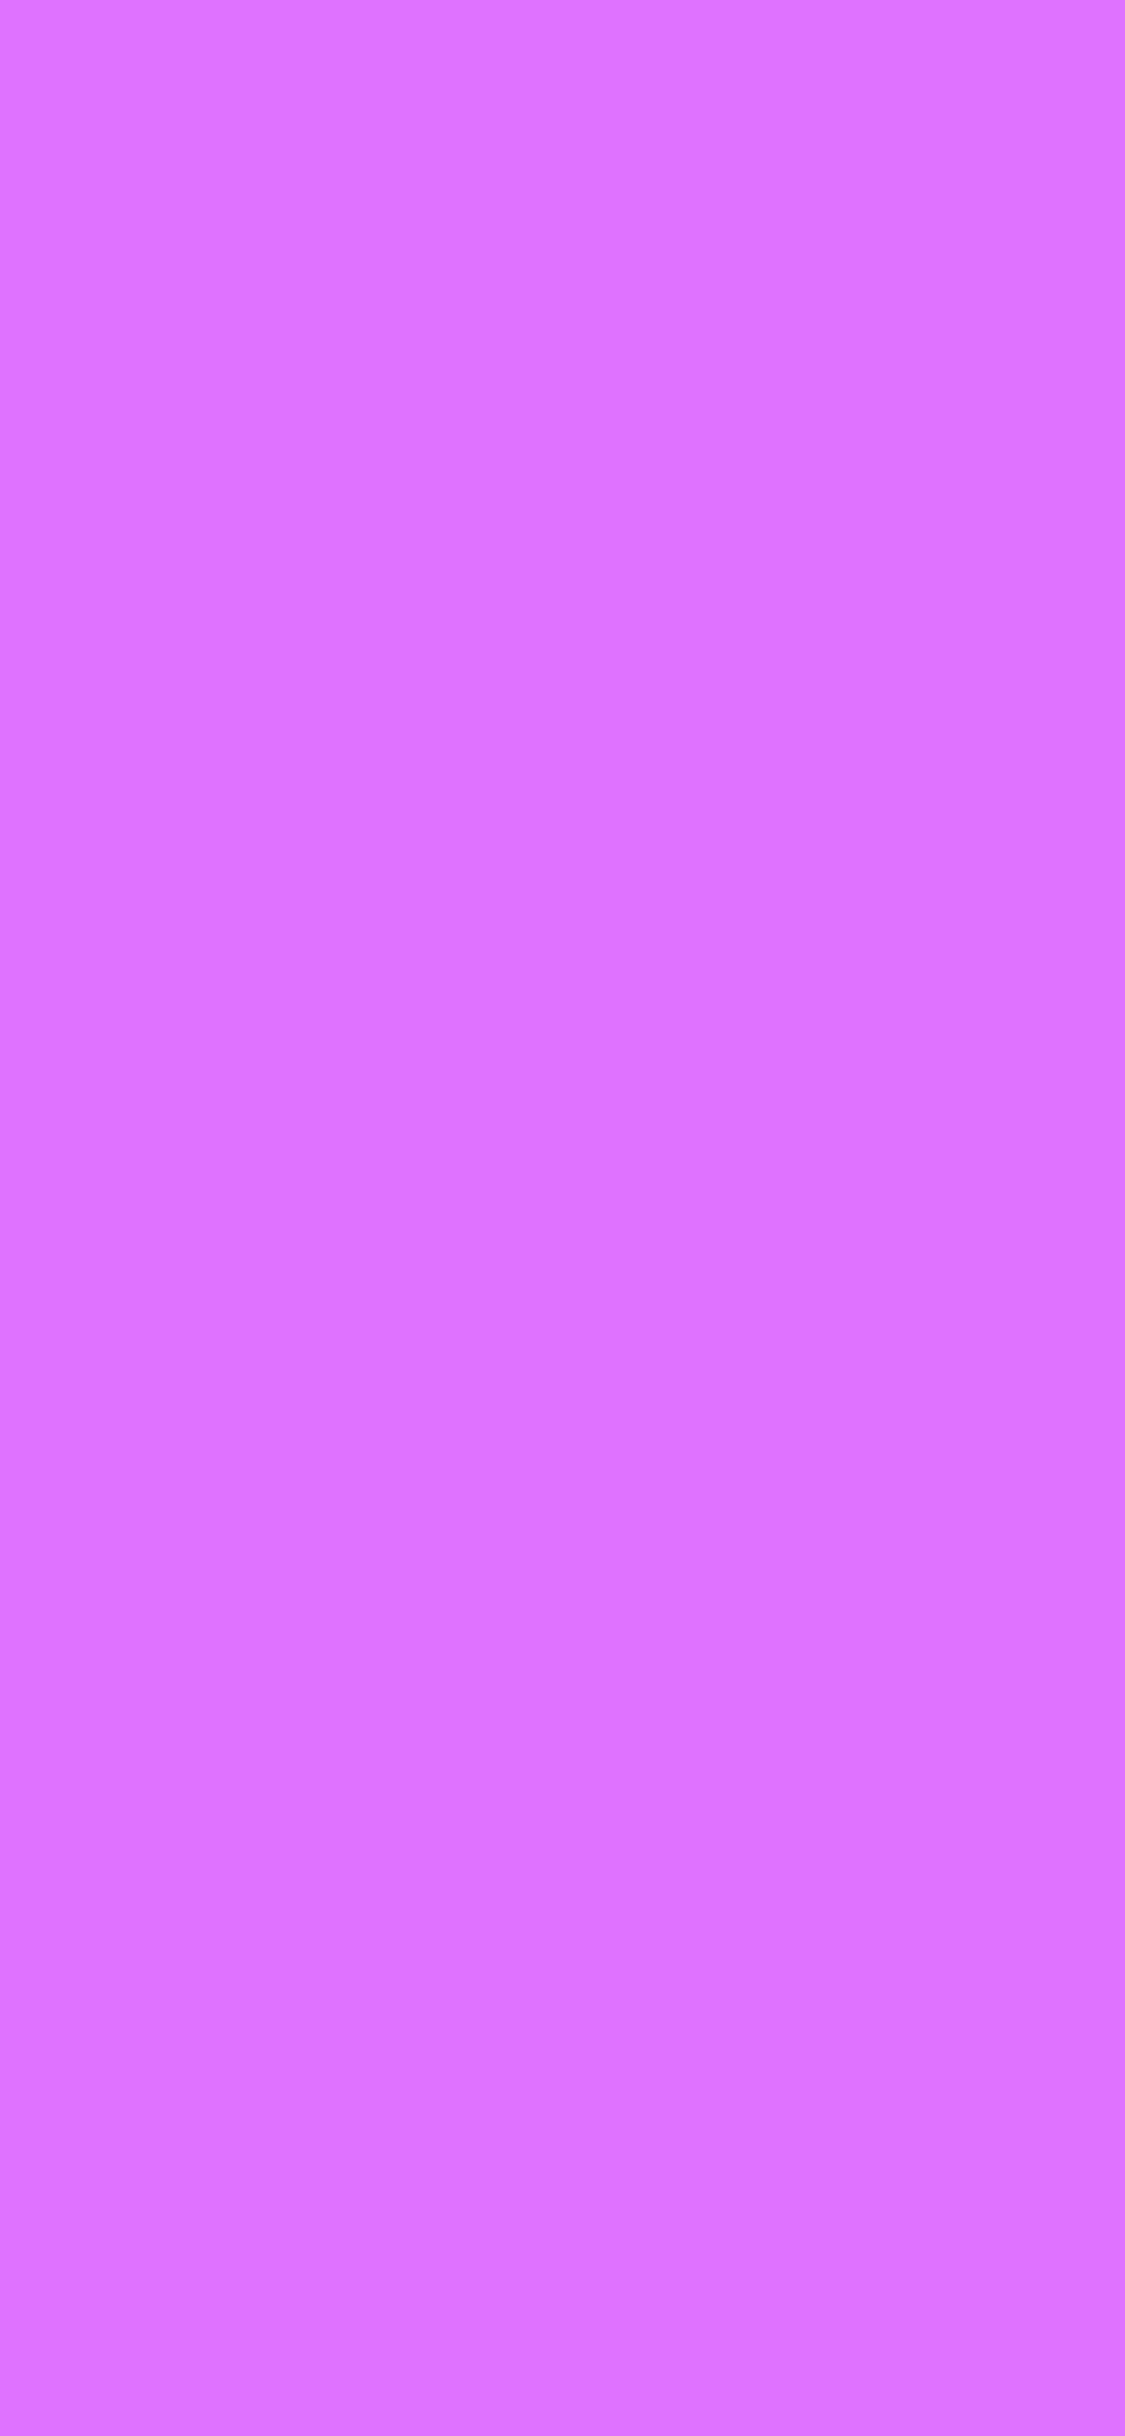 1125x2436 Heliotrope Solid Color Background